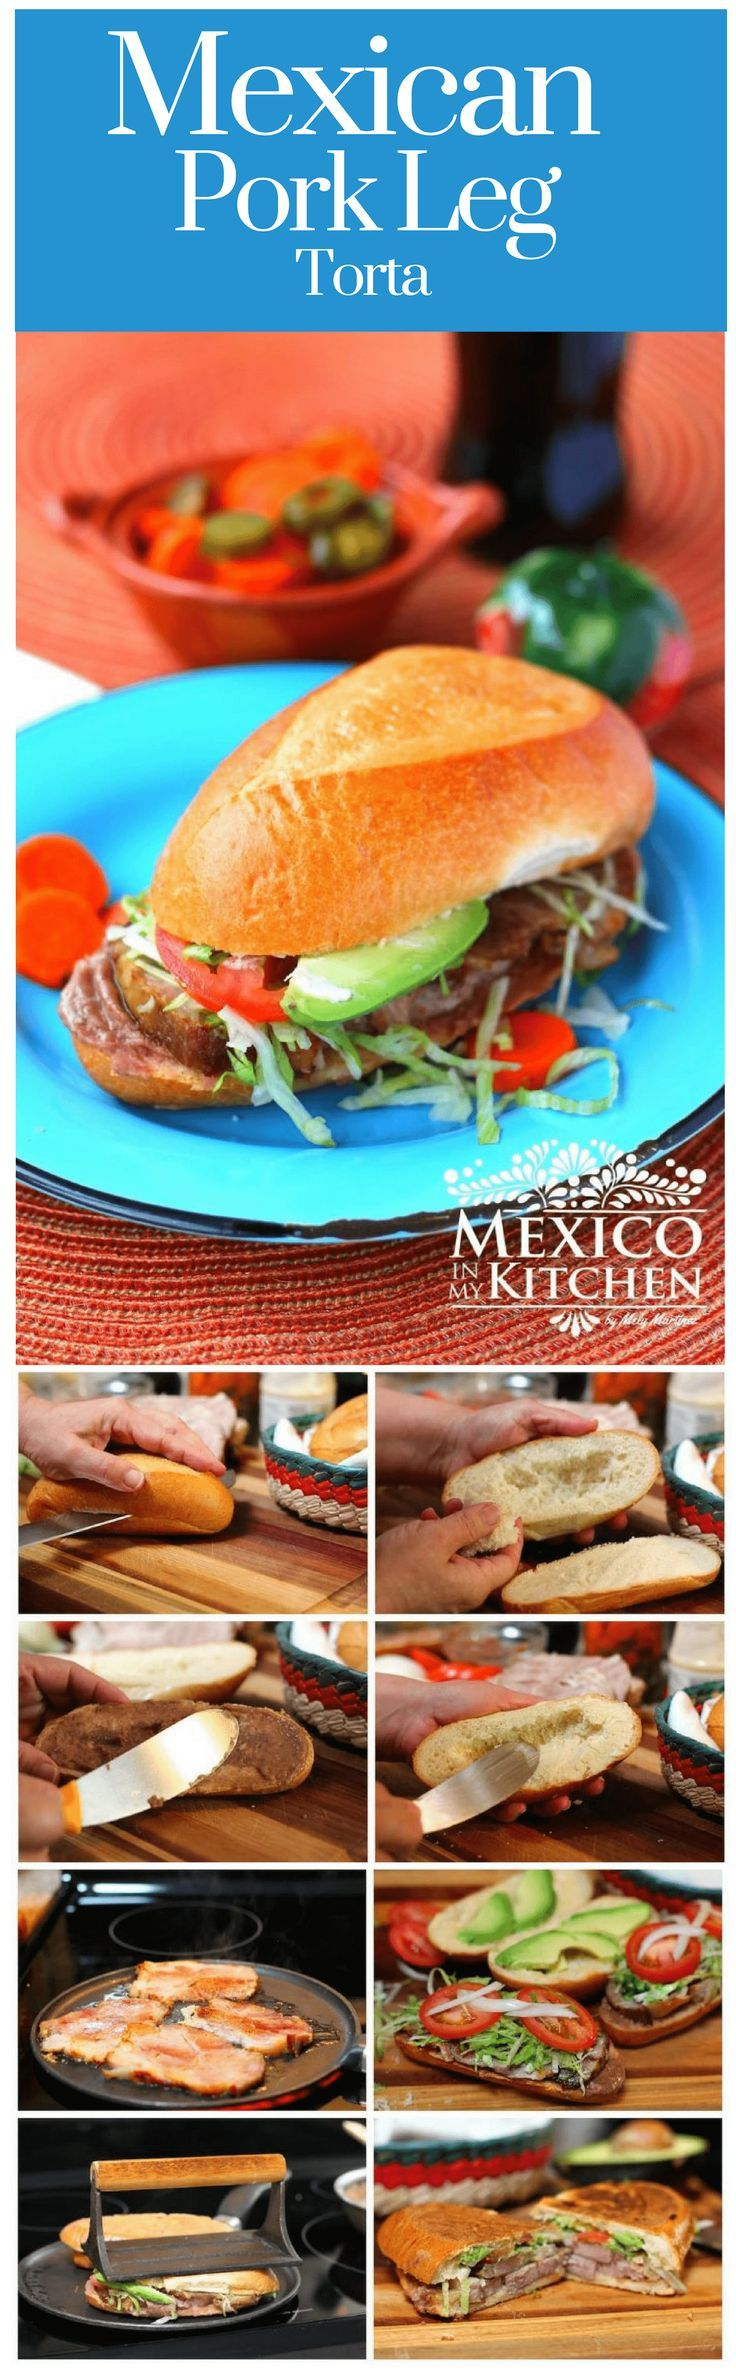 This recipe uses roasted pork leg or shoulder, so it's very common during the holidays to use the leftover pork to make this sandwich. It doesn't matter if your pork is cooked with wine or adobo, as long as it's pork, you can make this delicious torta! #mexicanrecipes #mexicancuisine #sandwich #pork